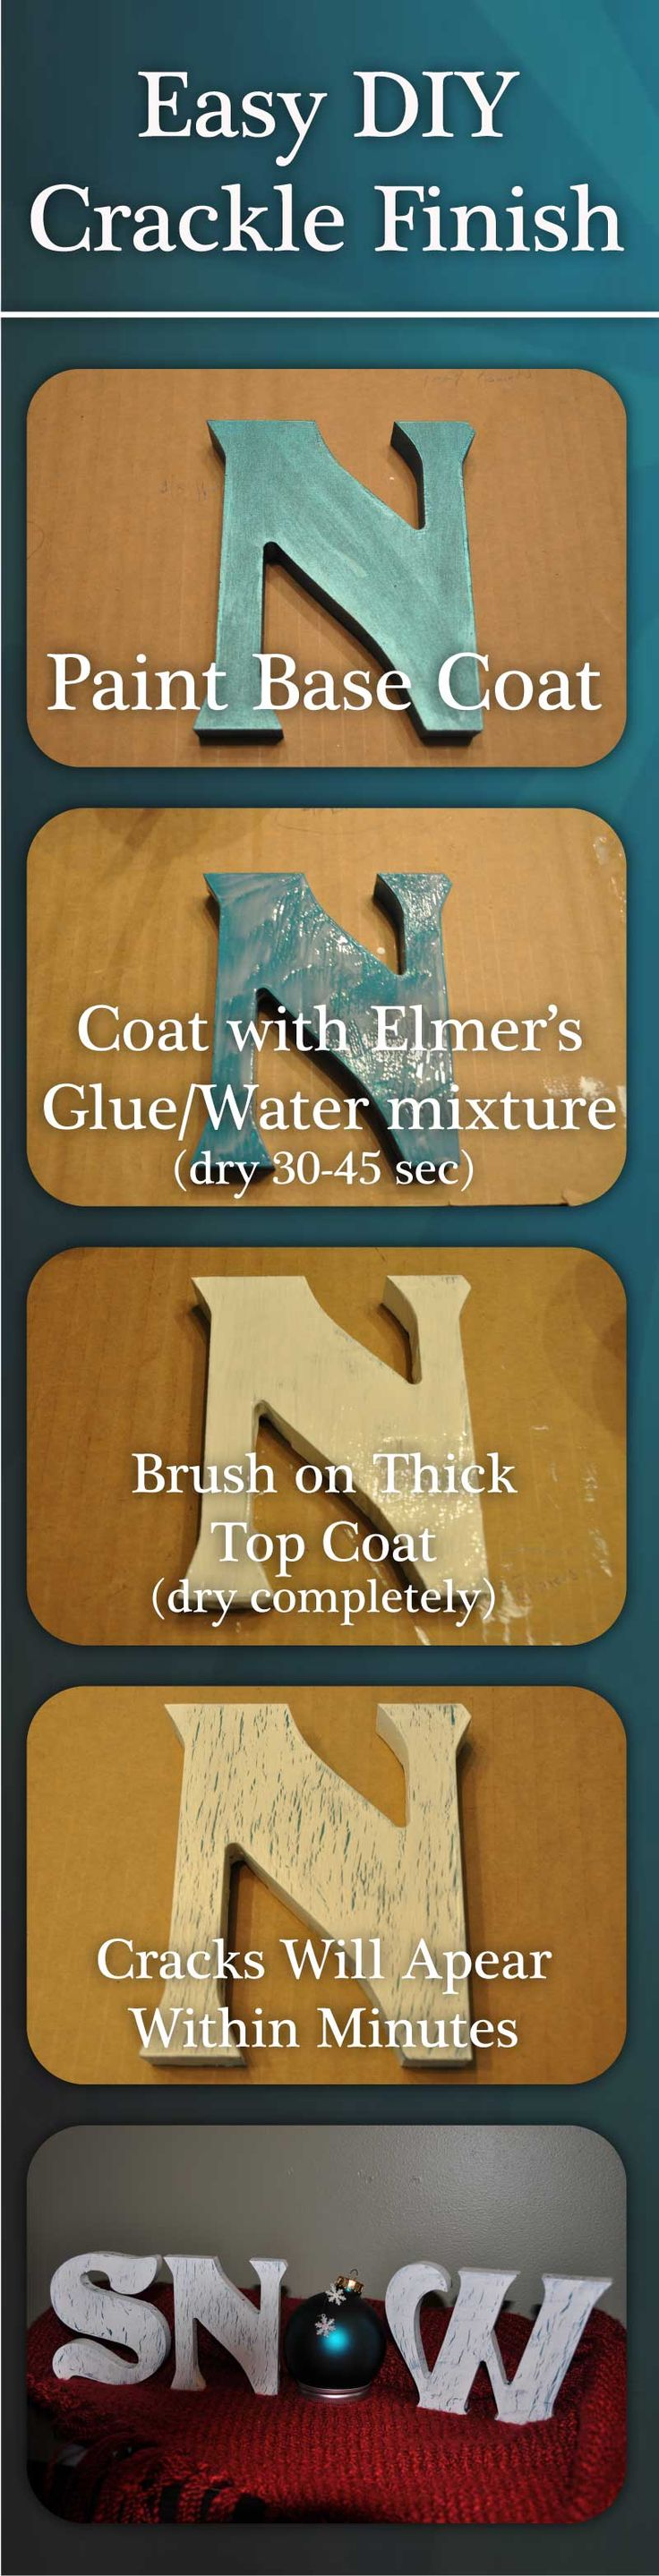 Easy DIY Crackle Finish using.... Elmer's Glue! Another pinner said: This has beaten out tons of products and given me the best crackle effect so far